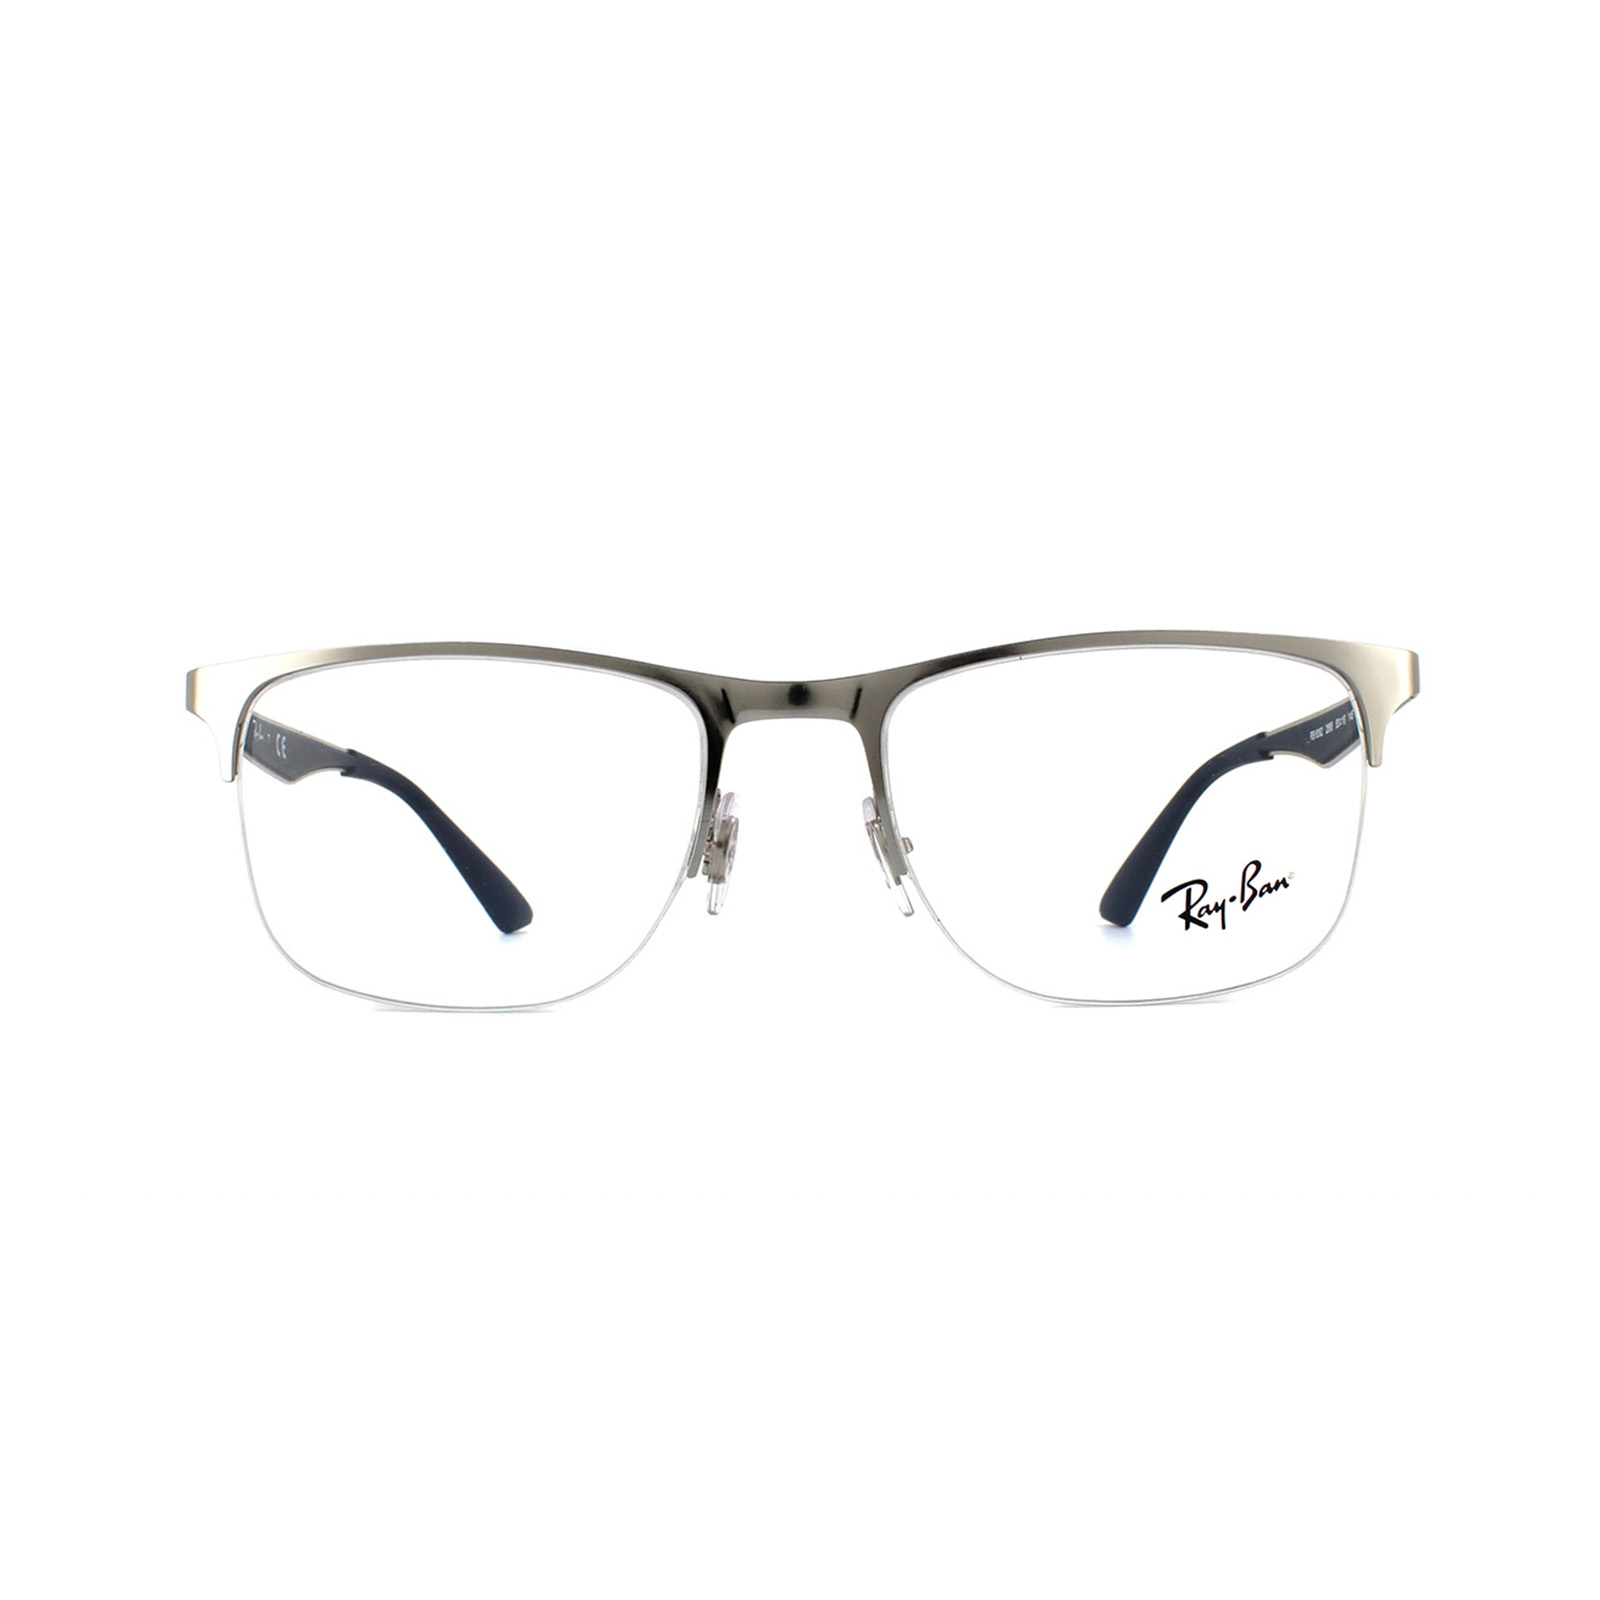 d422cdecee7 Sentinel Ray-Ban Glasses Frames RX 6362 2595 Shiny Silver Blue Mens 53mm